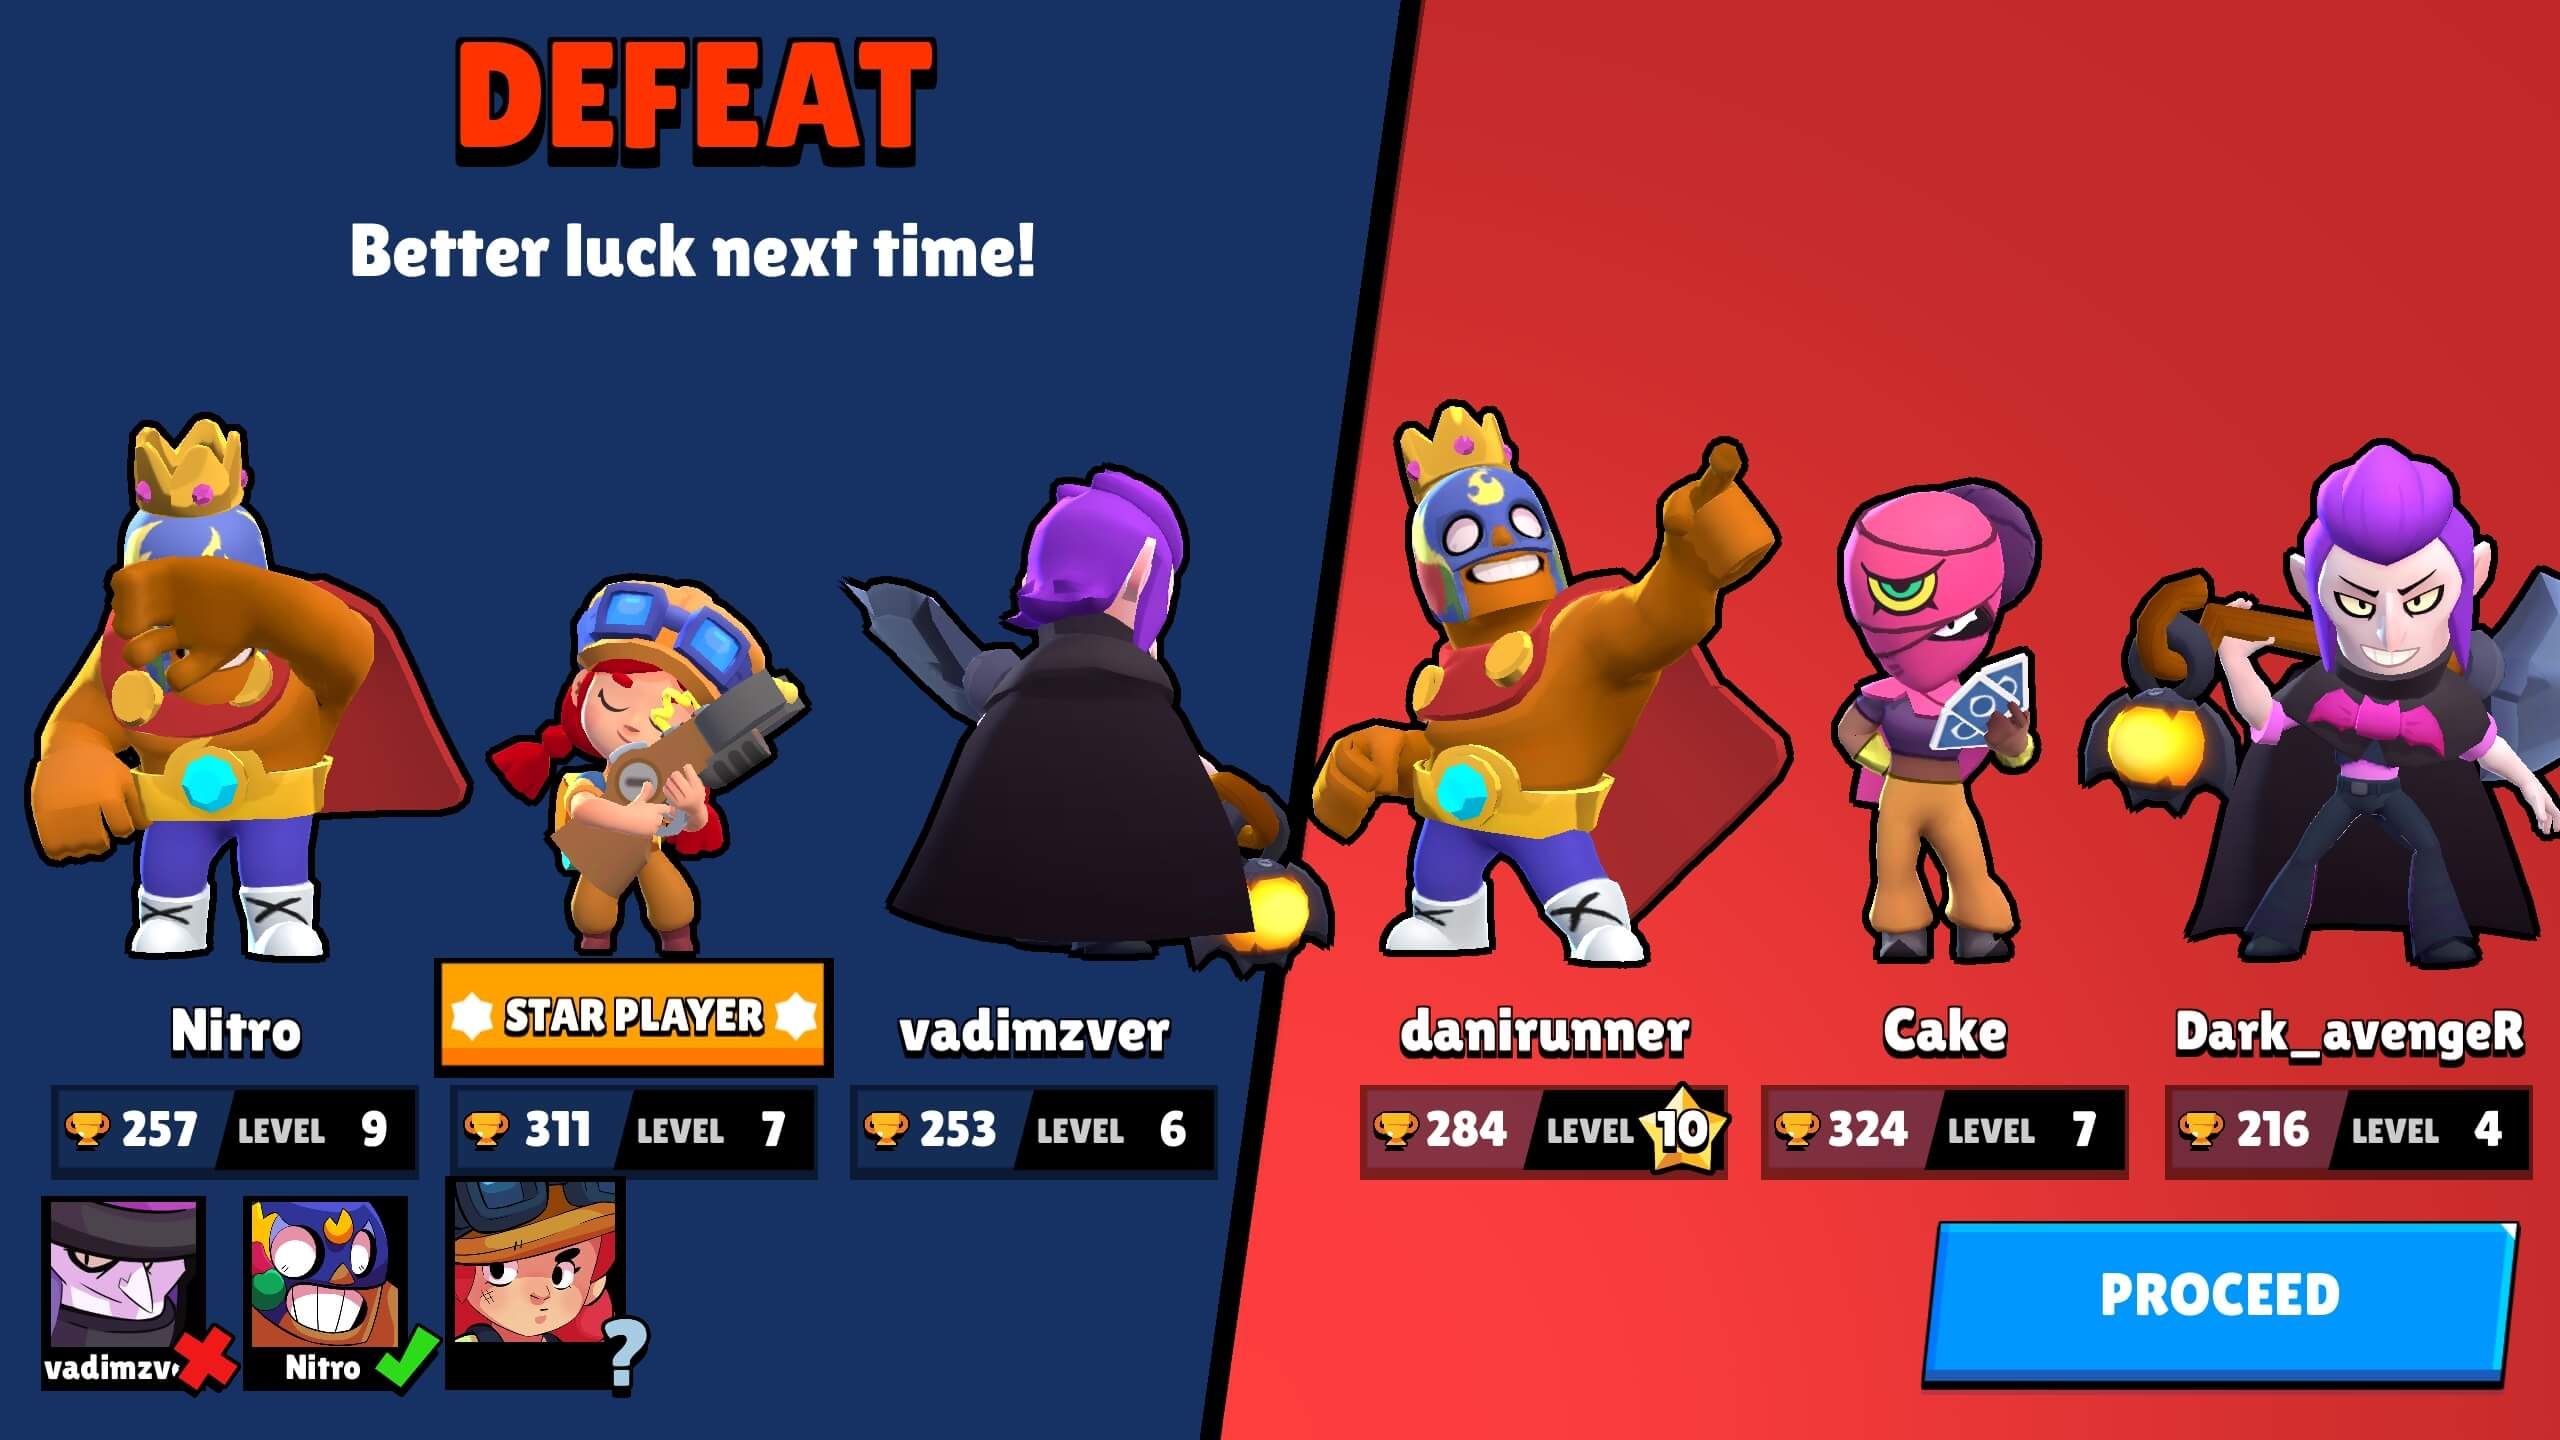 star player brawl stars